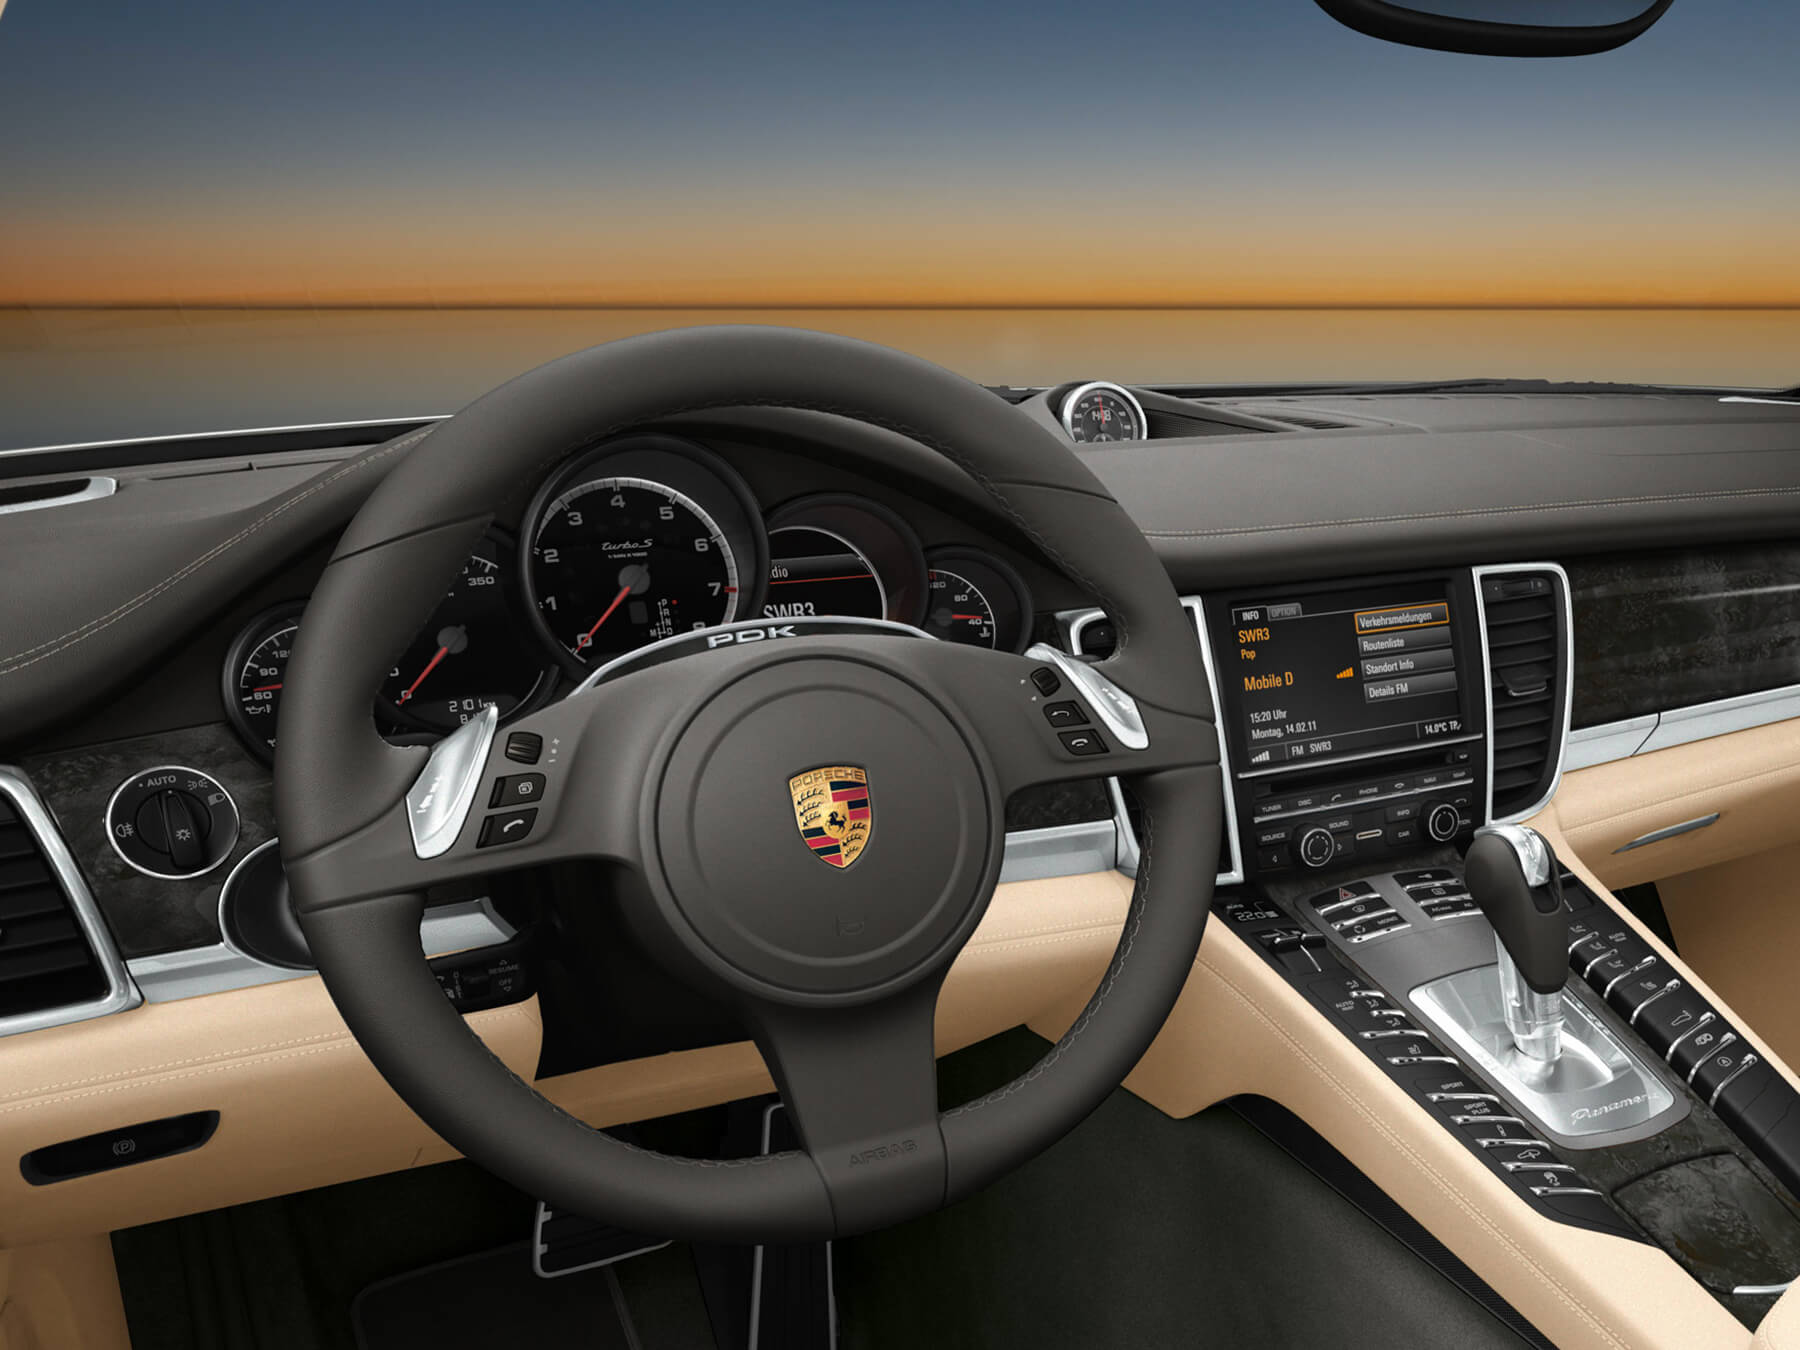 Black and tan Porsche Interior